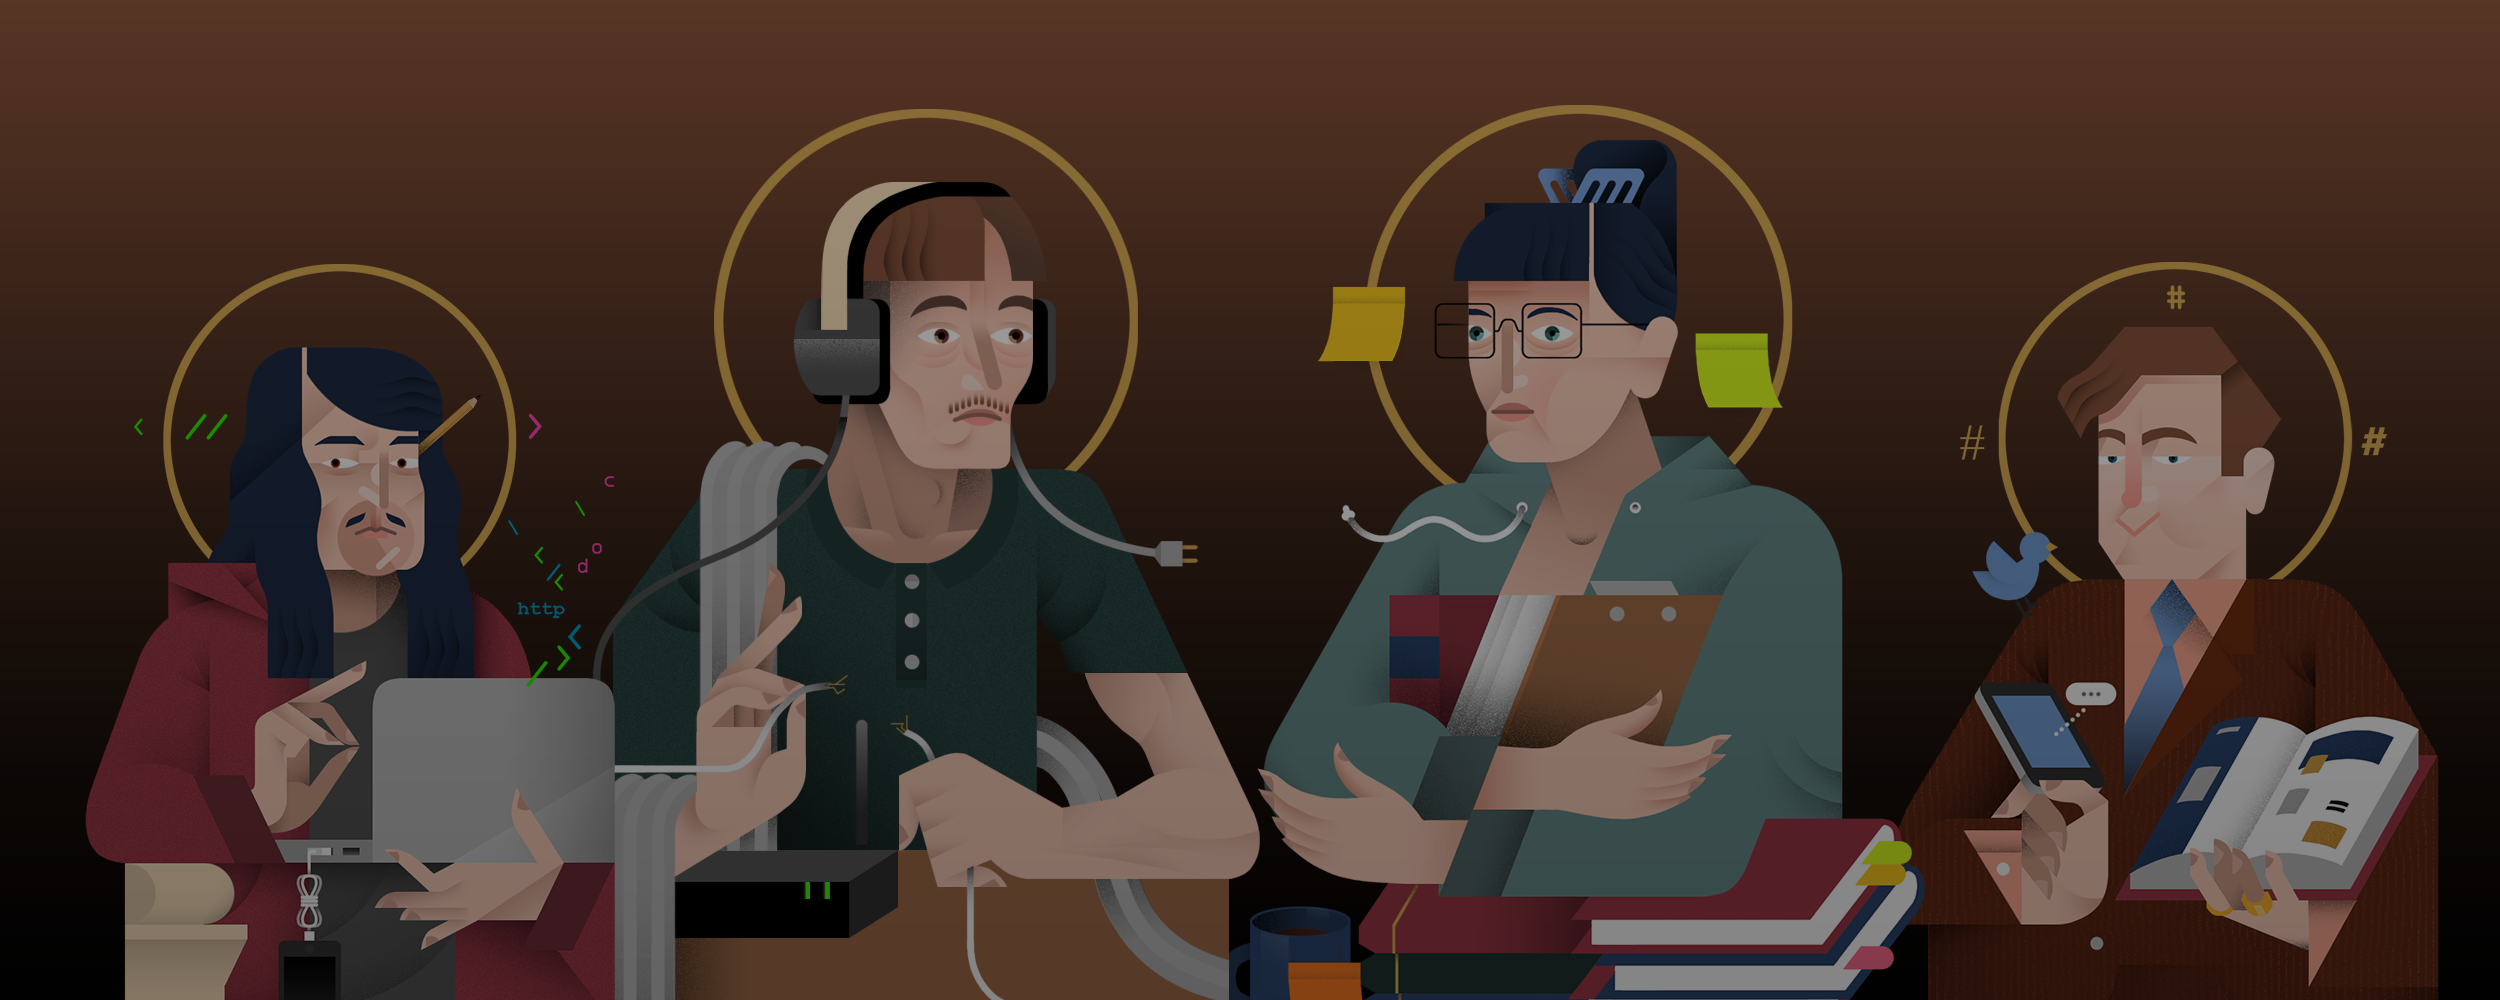 Modern saints: Meet the patron saints of Wikipedia editors, video game athletes and developers